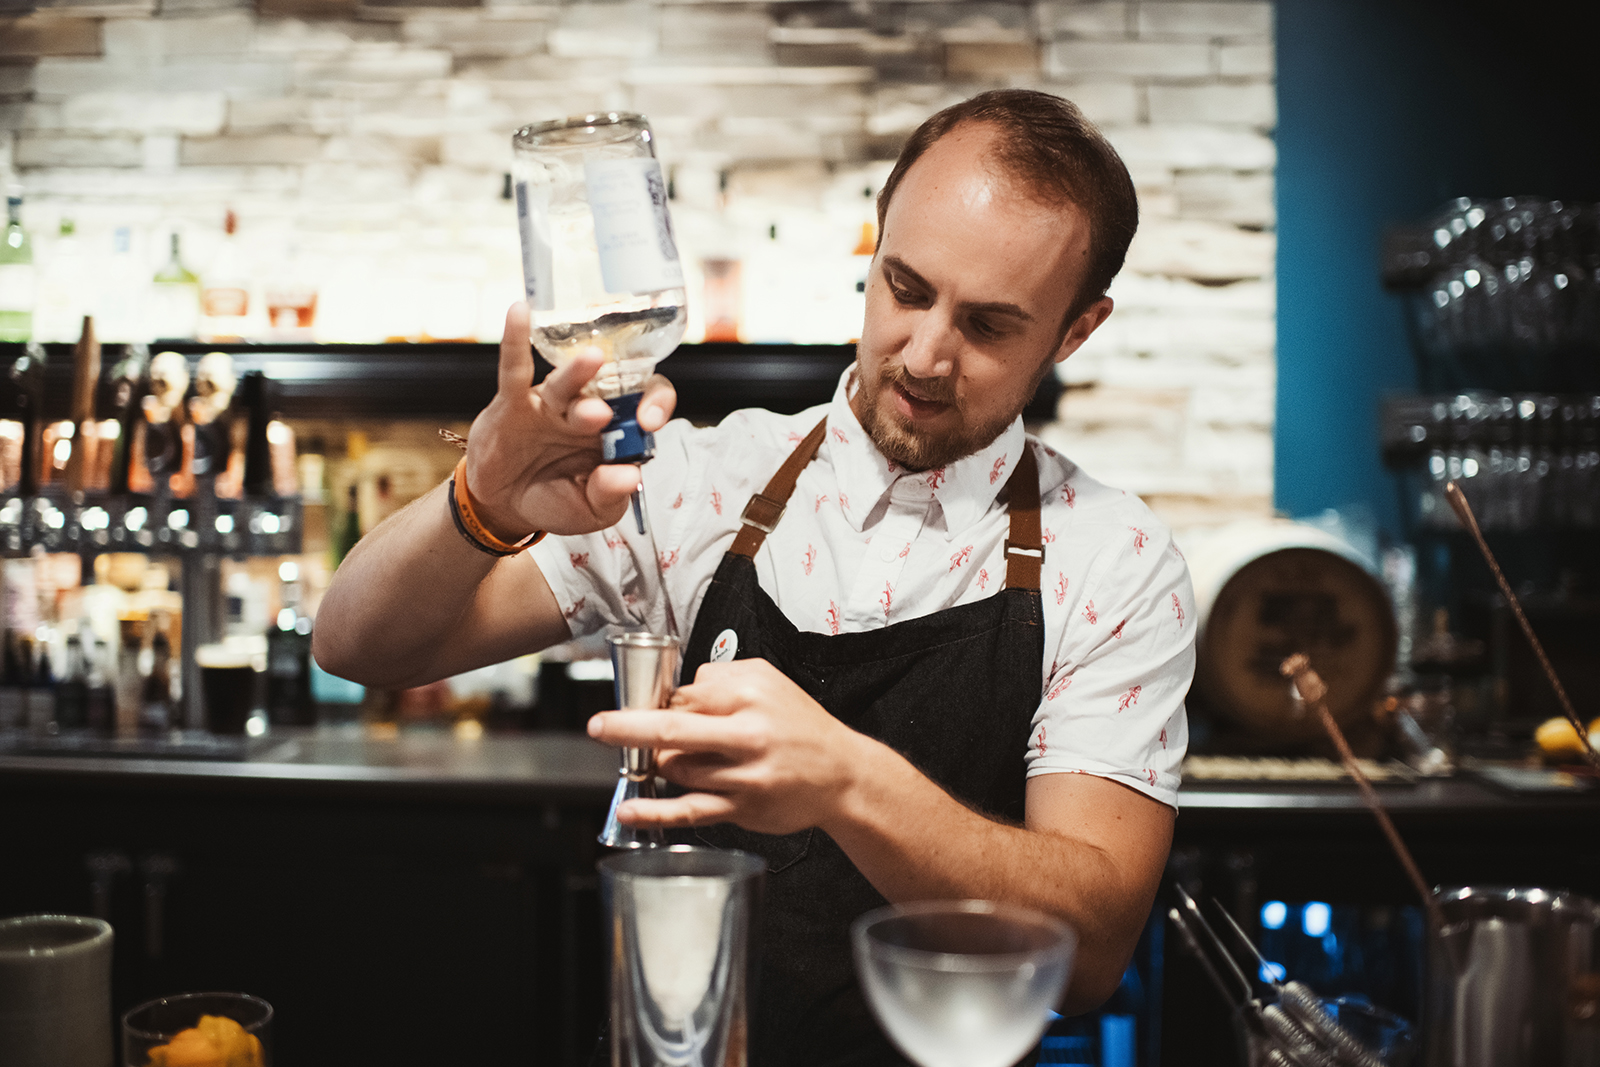 Hosting your own event? - Order your party necessities from us–including wine, liquor, and all the essentials for great craft cocktails–and let our talented bar staff do the mixing for you.